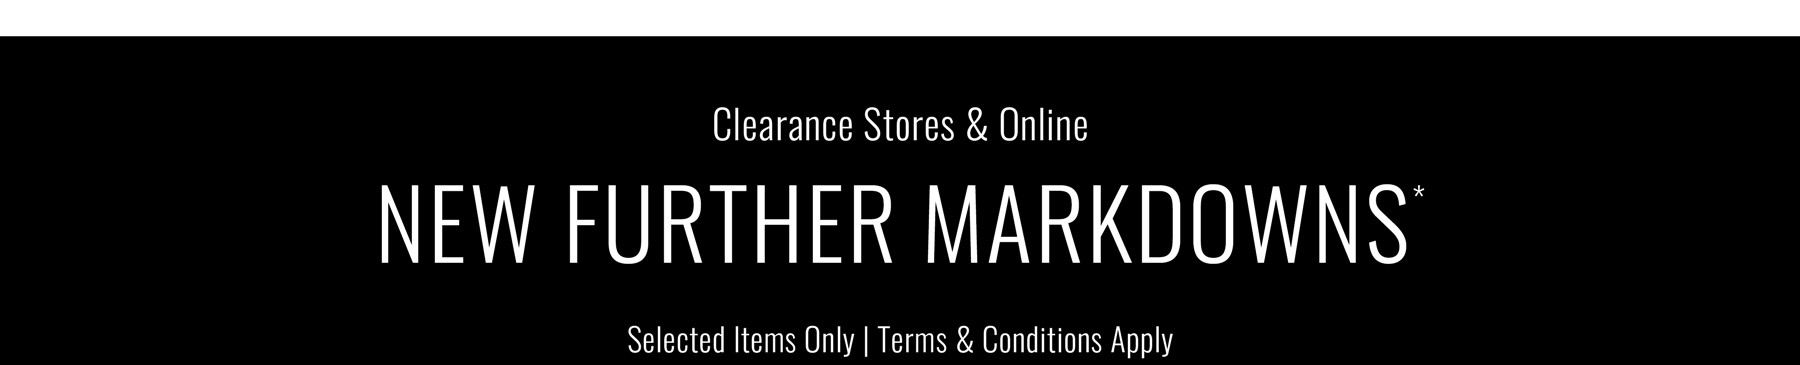 New Further Markdowns